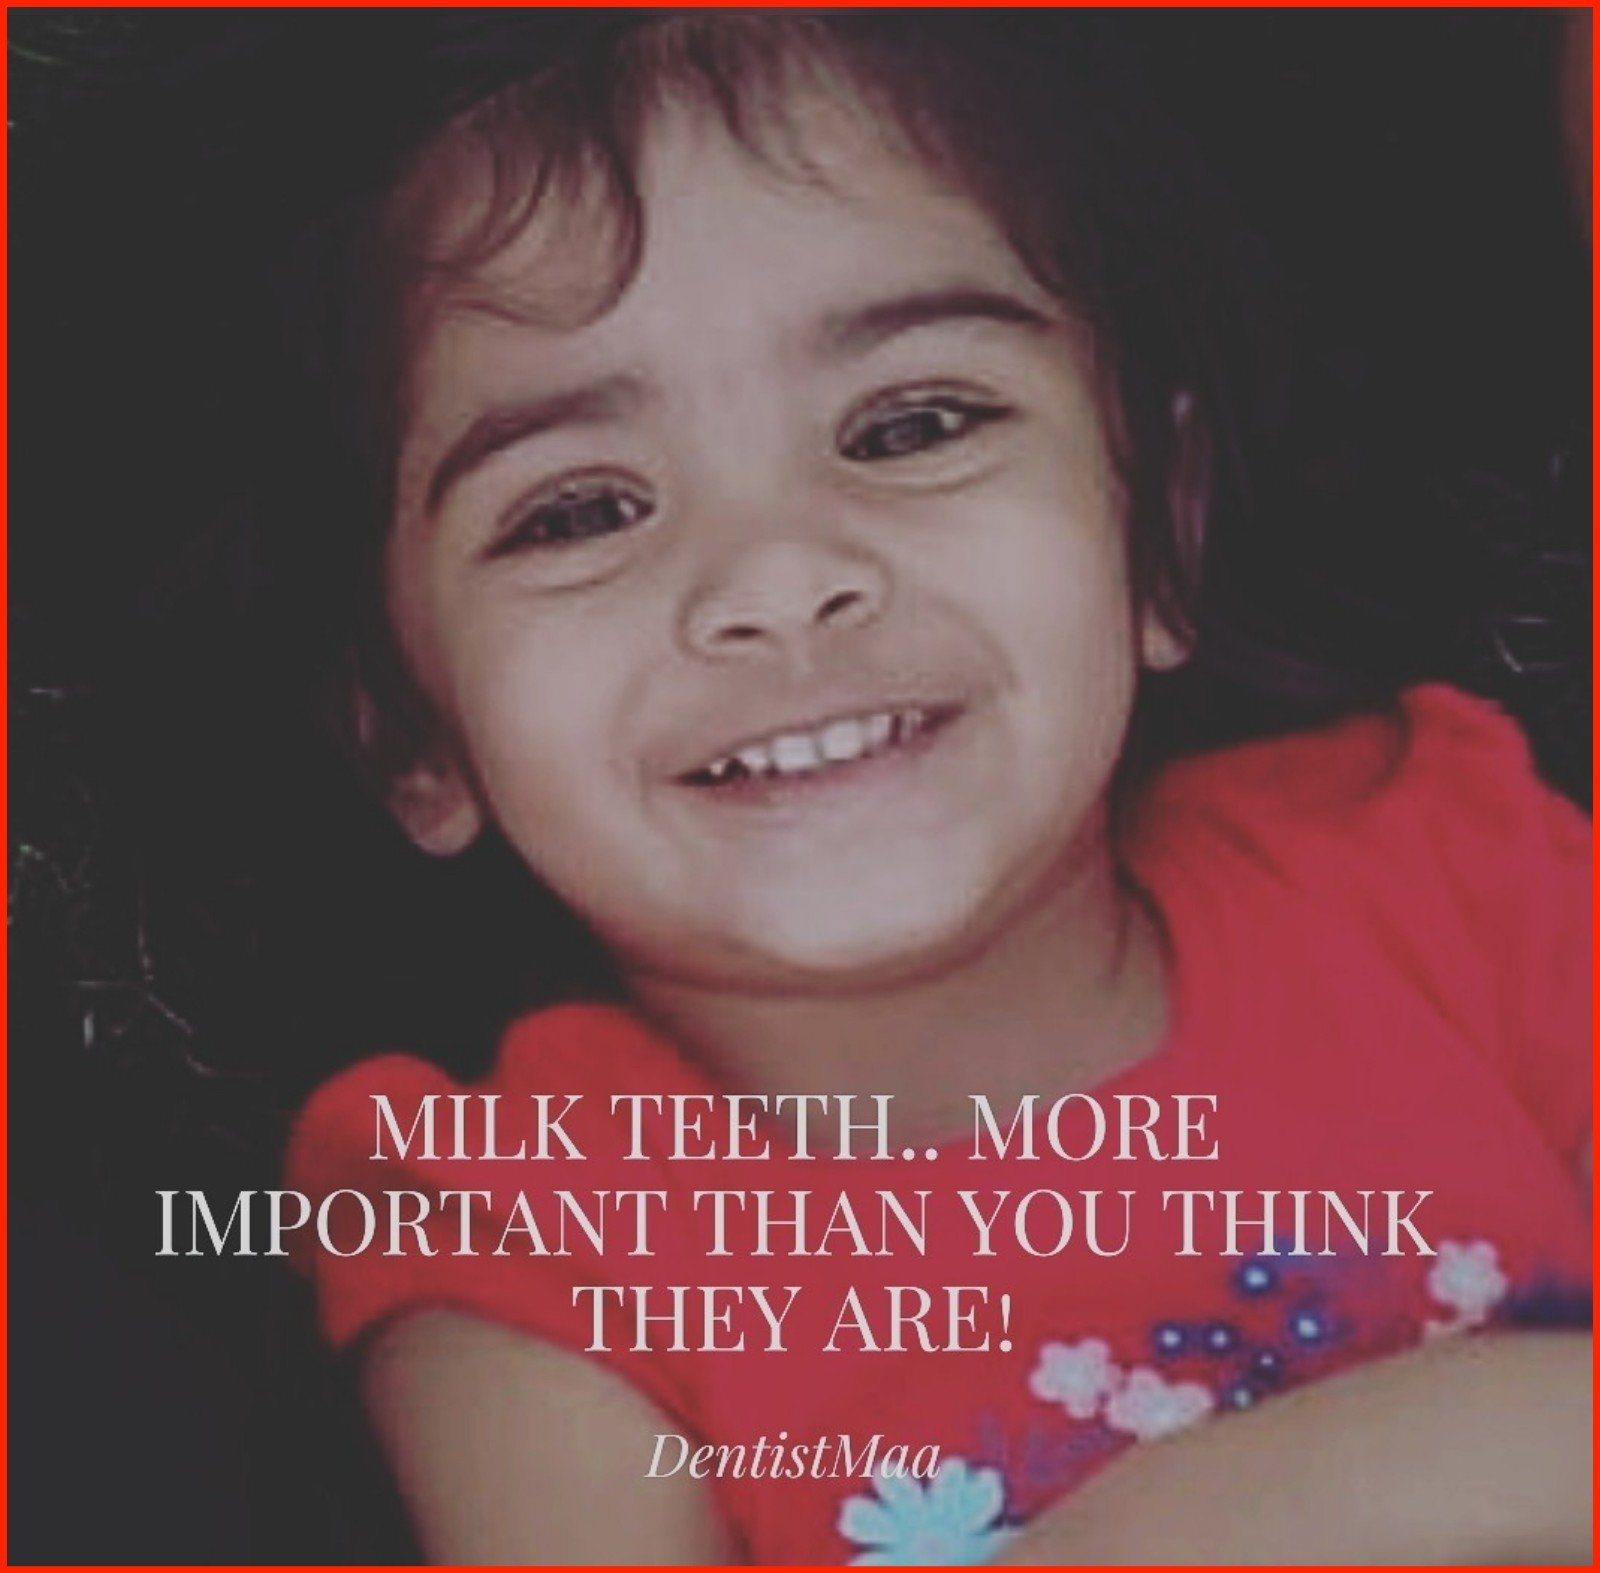 Milk teeth… More important than you think they are!!